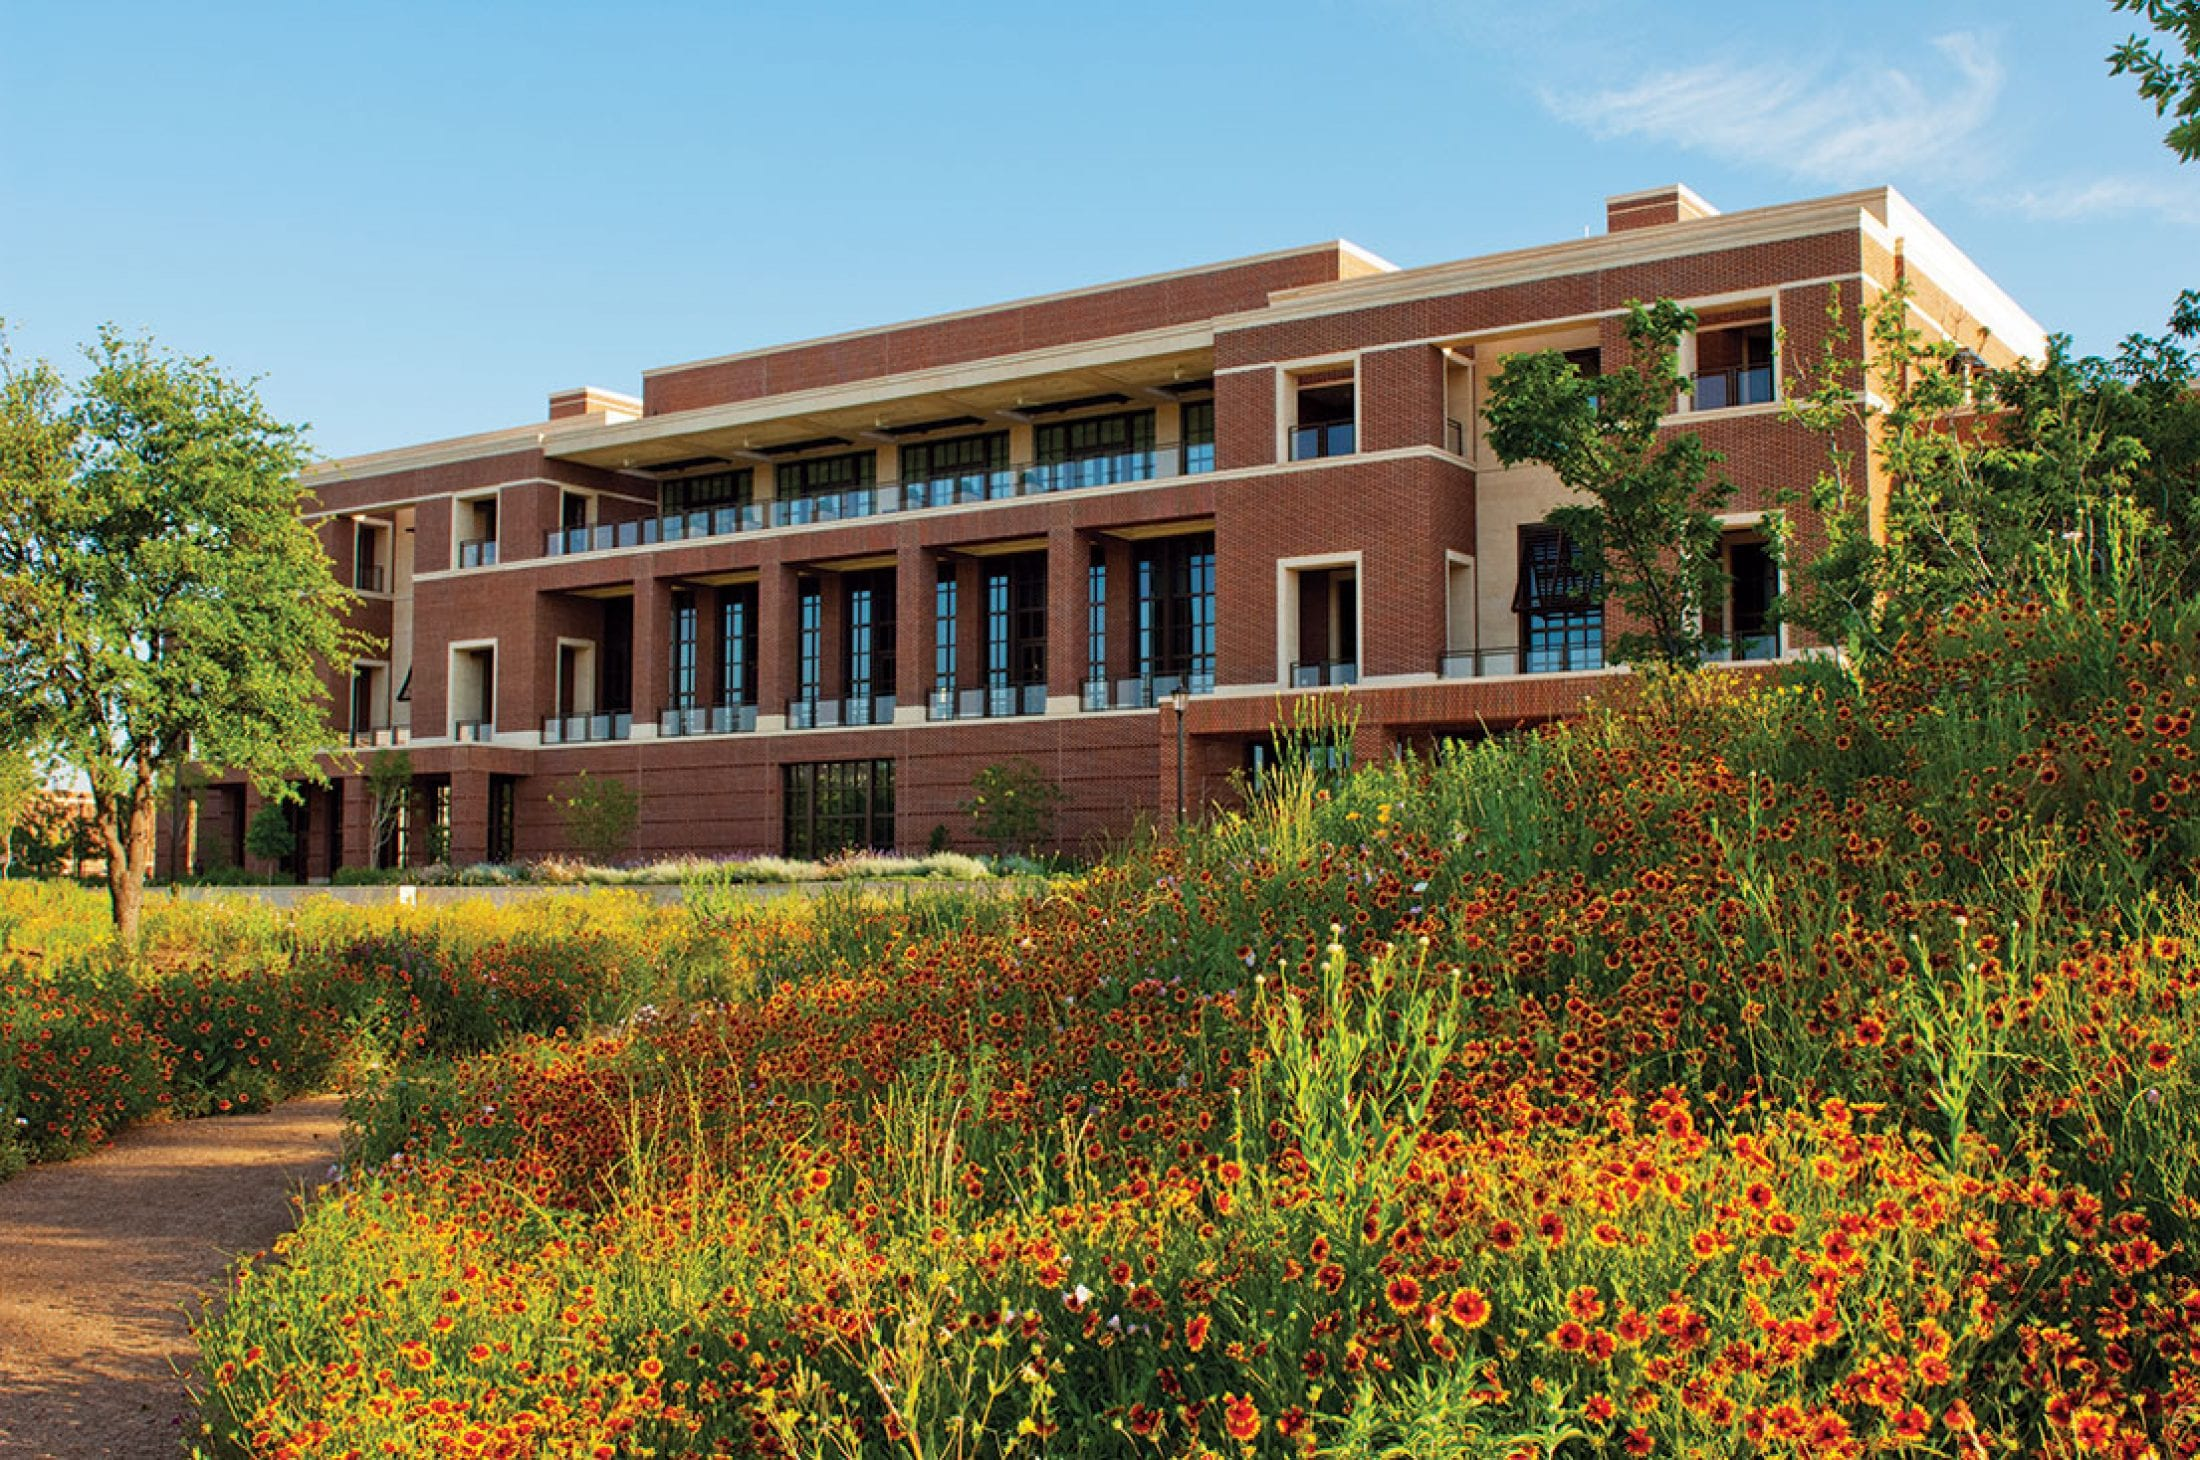 The Bush Presidential Center features a 15-acre urban garden featuring an abundance of native flora and other plants.